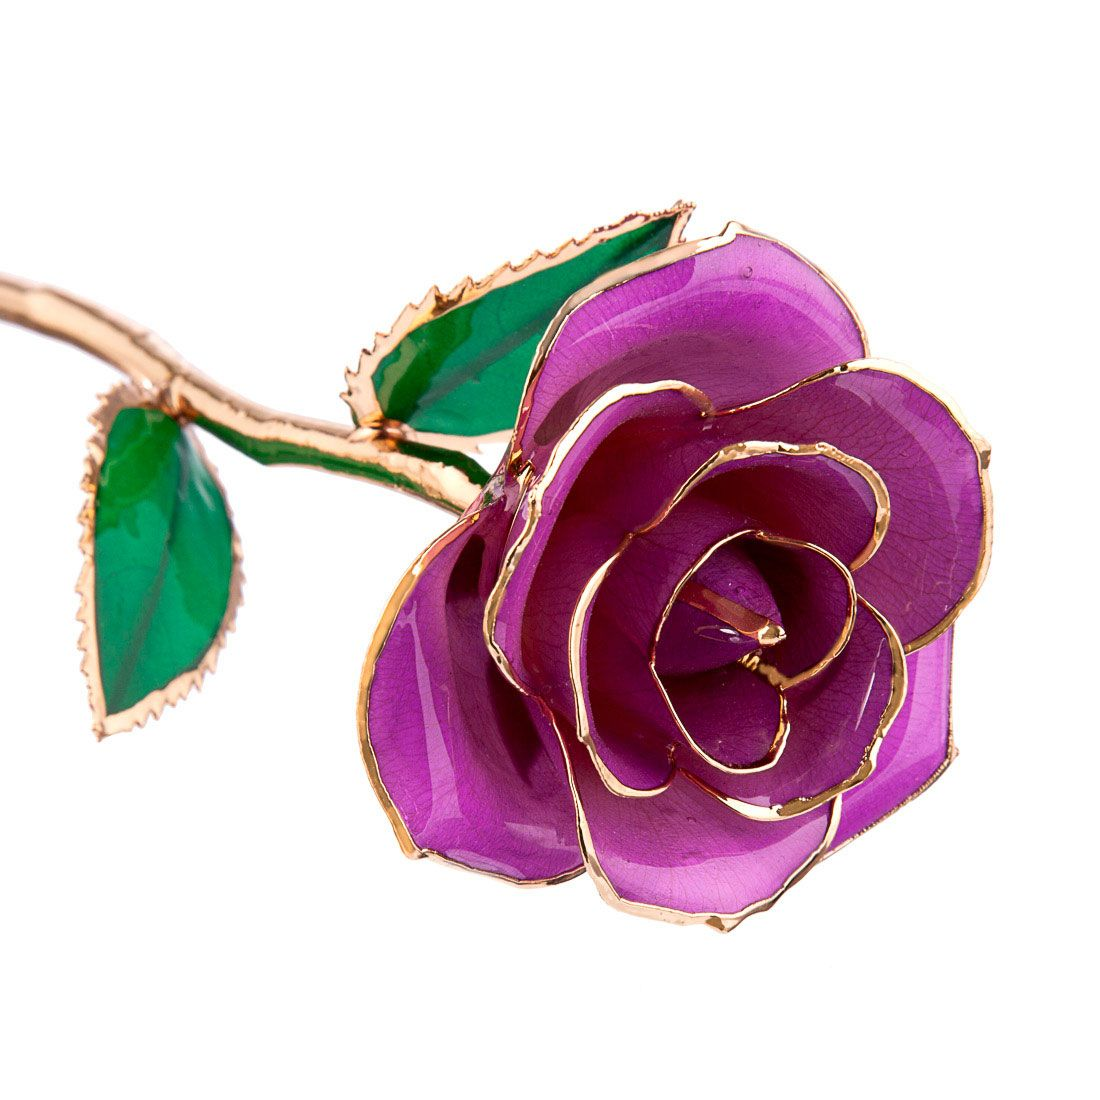 Radiant Orchid 24kt Gold Dipped Rose Steven Singer Jewelers